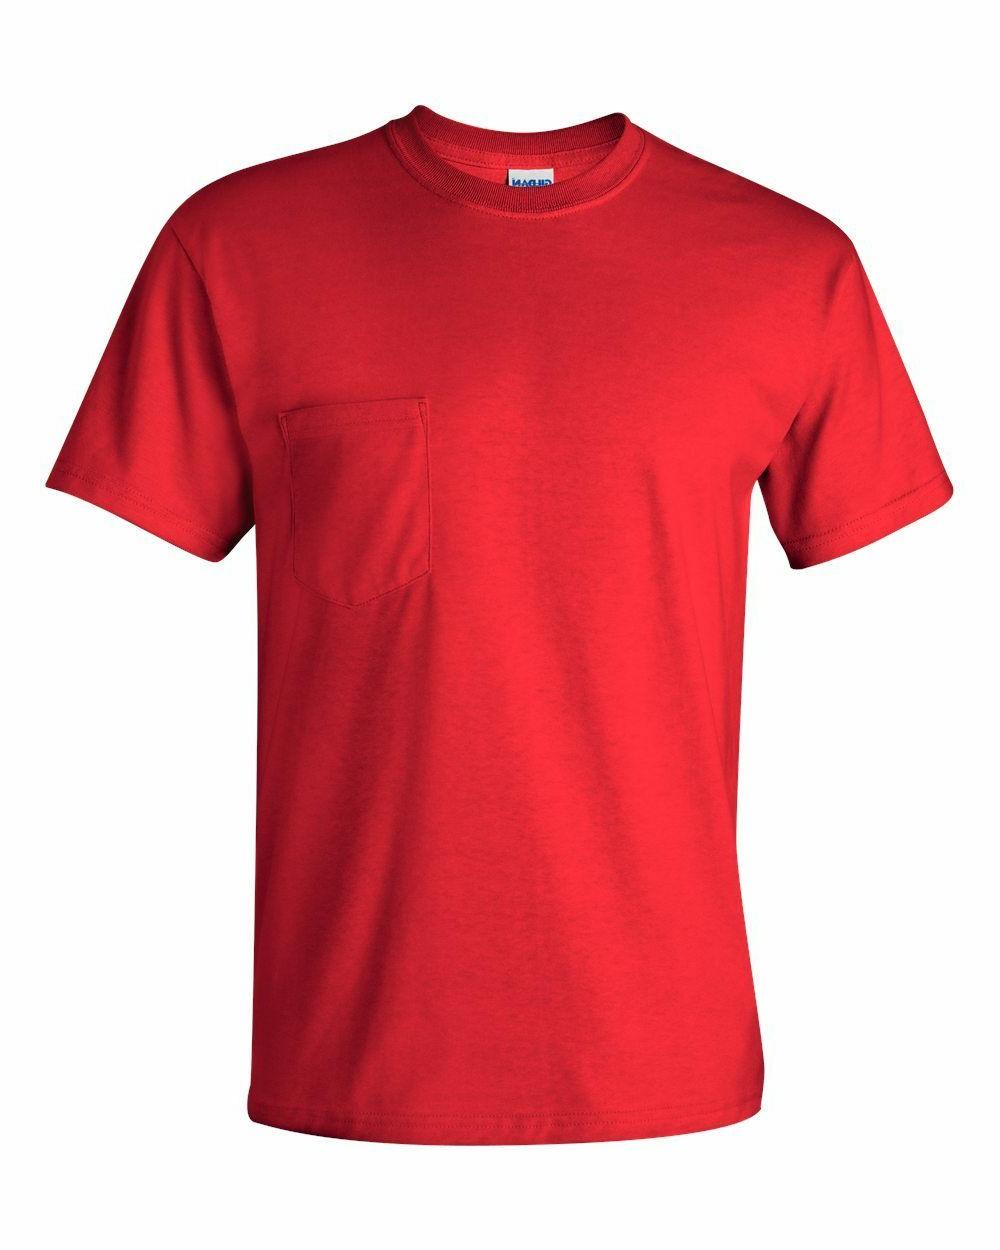 Gildan NEW S-XL 5XL Pocket Tees Cotton T-Shirts 2300